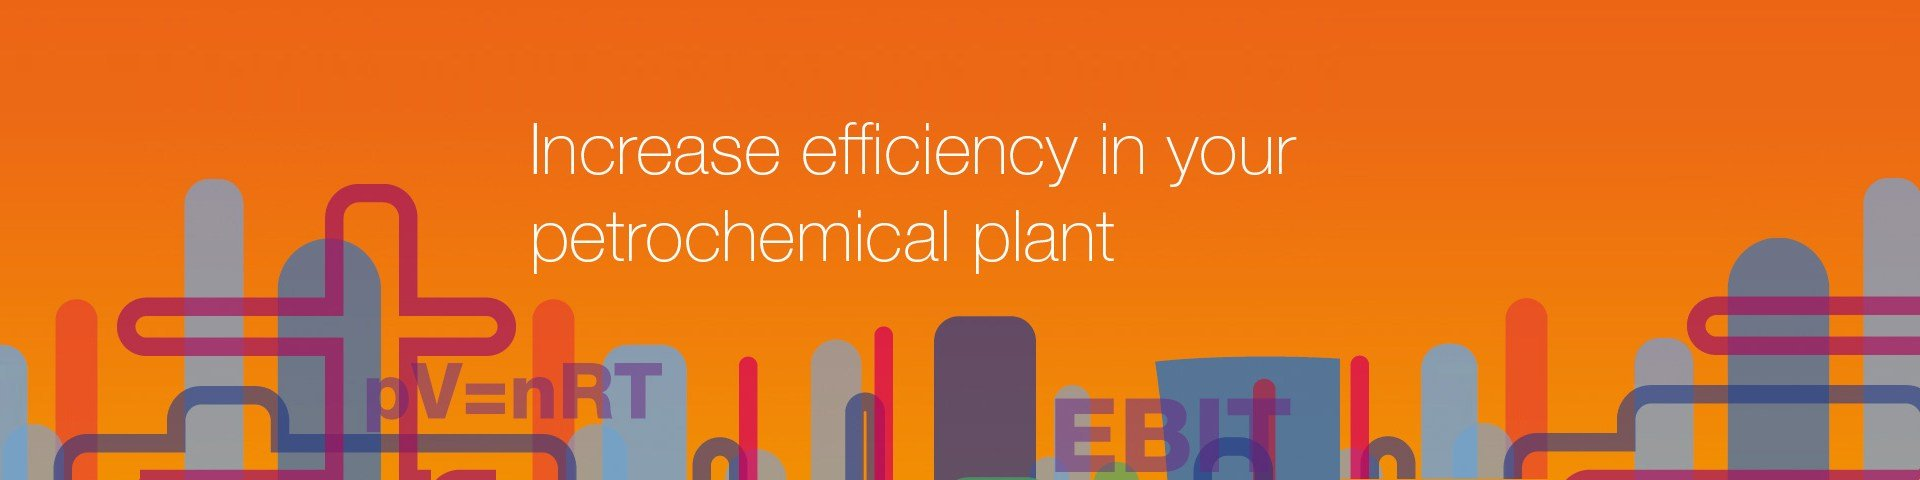 Petrochemicals banner 1920x480